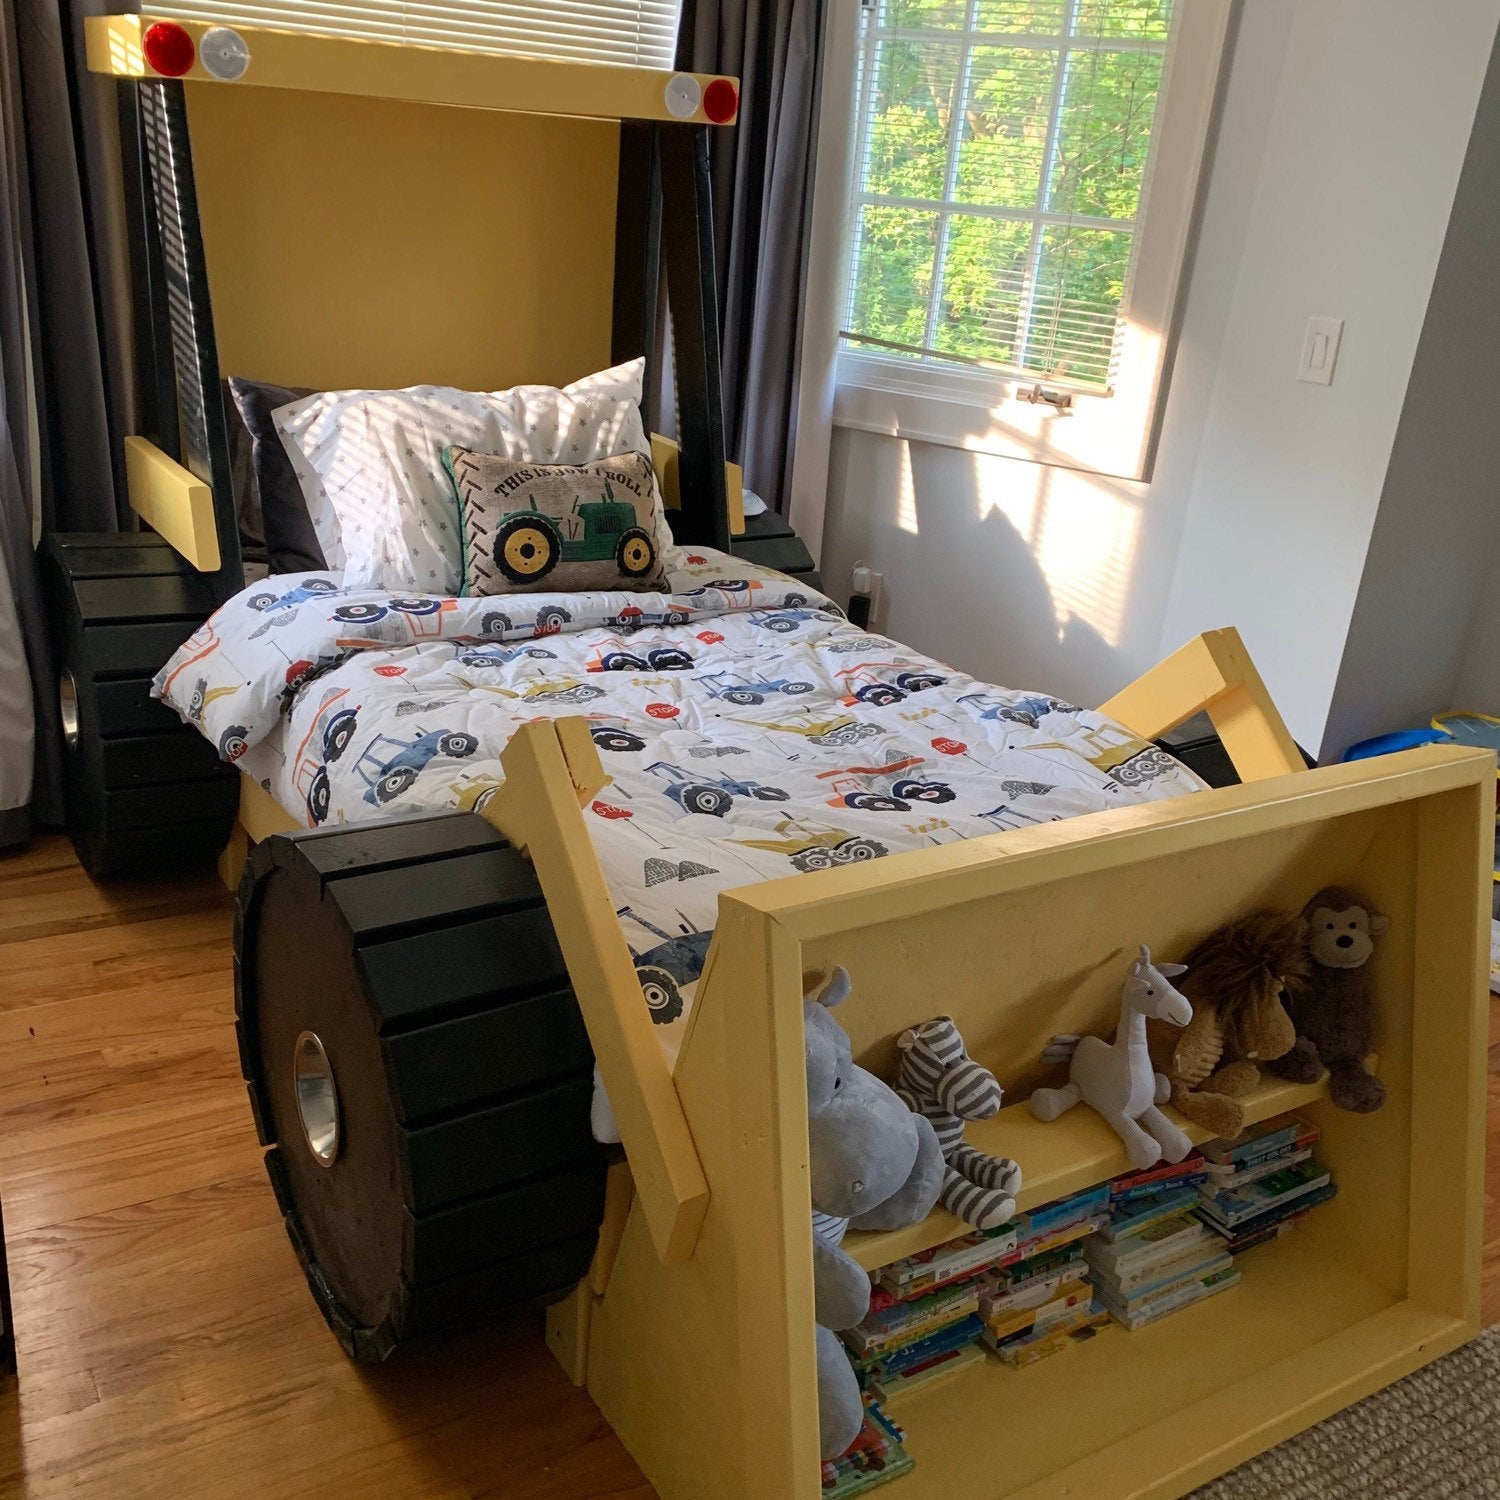 This Construction Truck Kids Bed Has A Built In Bookshelf In The Bucket